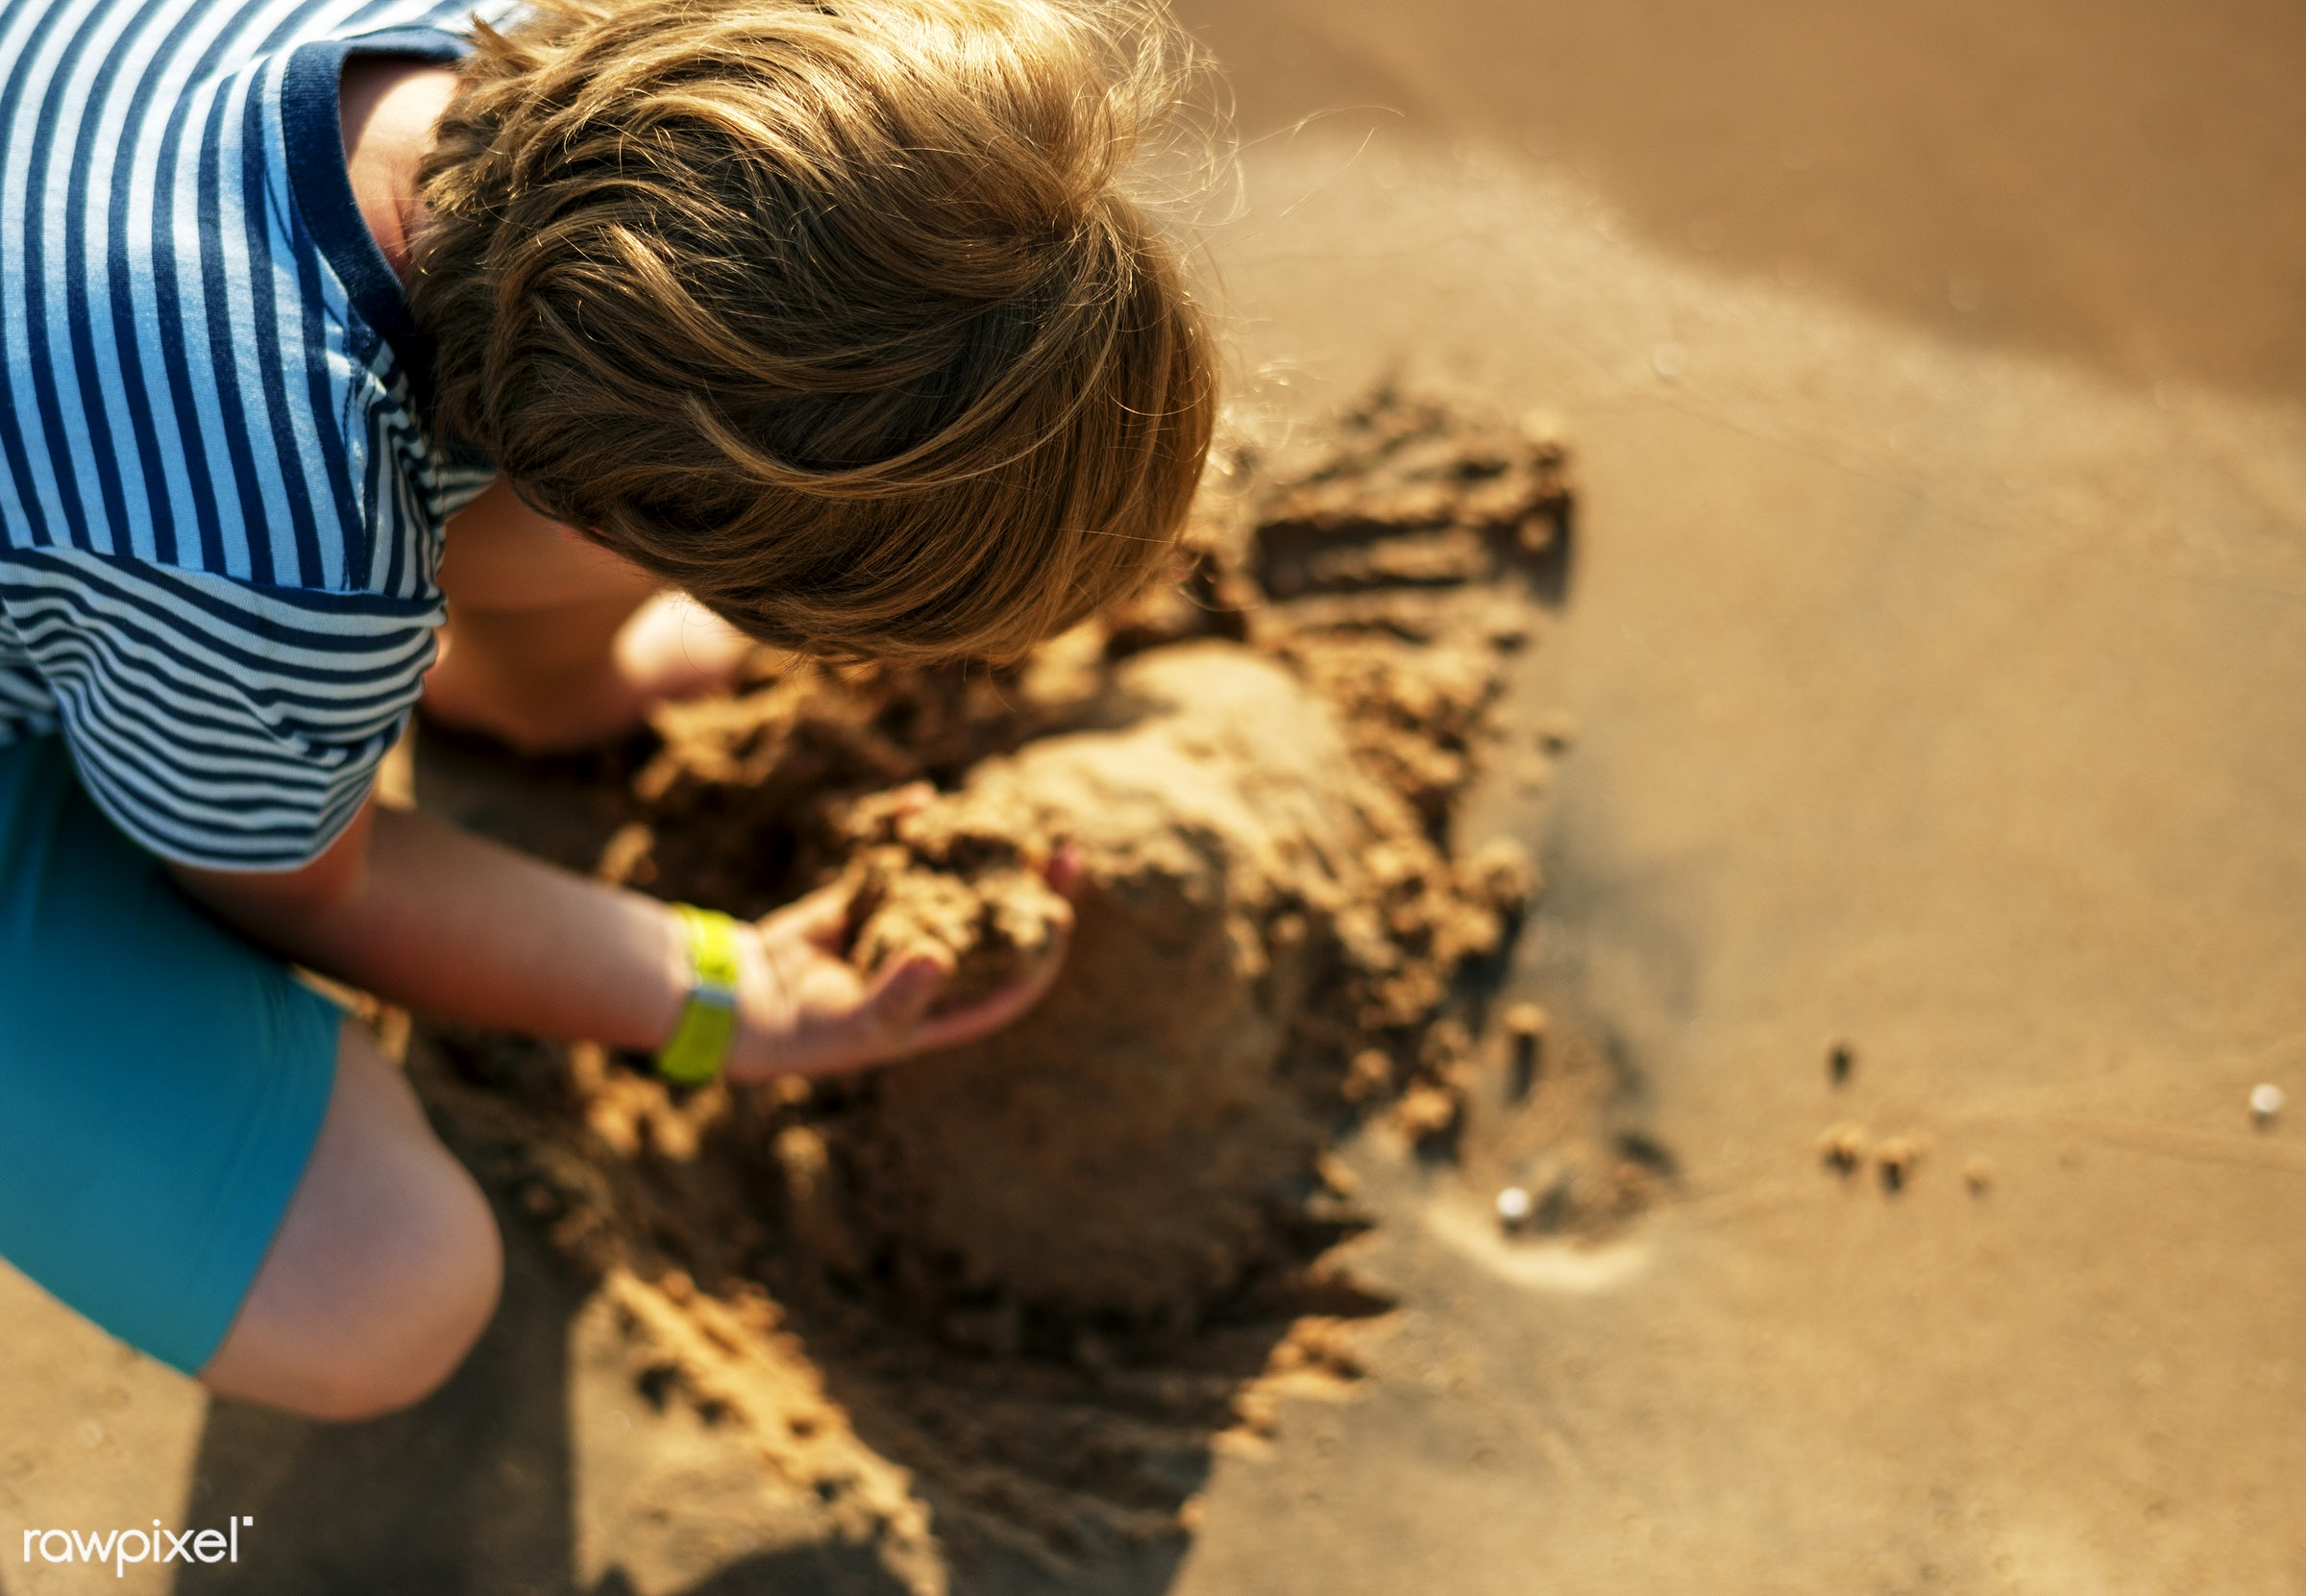 bay, beach, boy, child, crouch, fun, holiday, kid, nature, playing, sand, sea, shore, summer, vacation, young